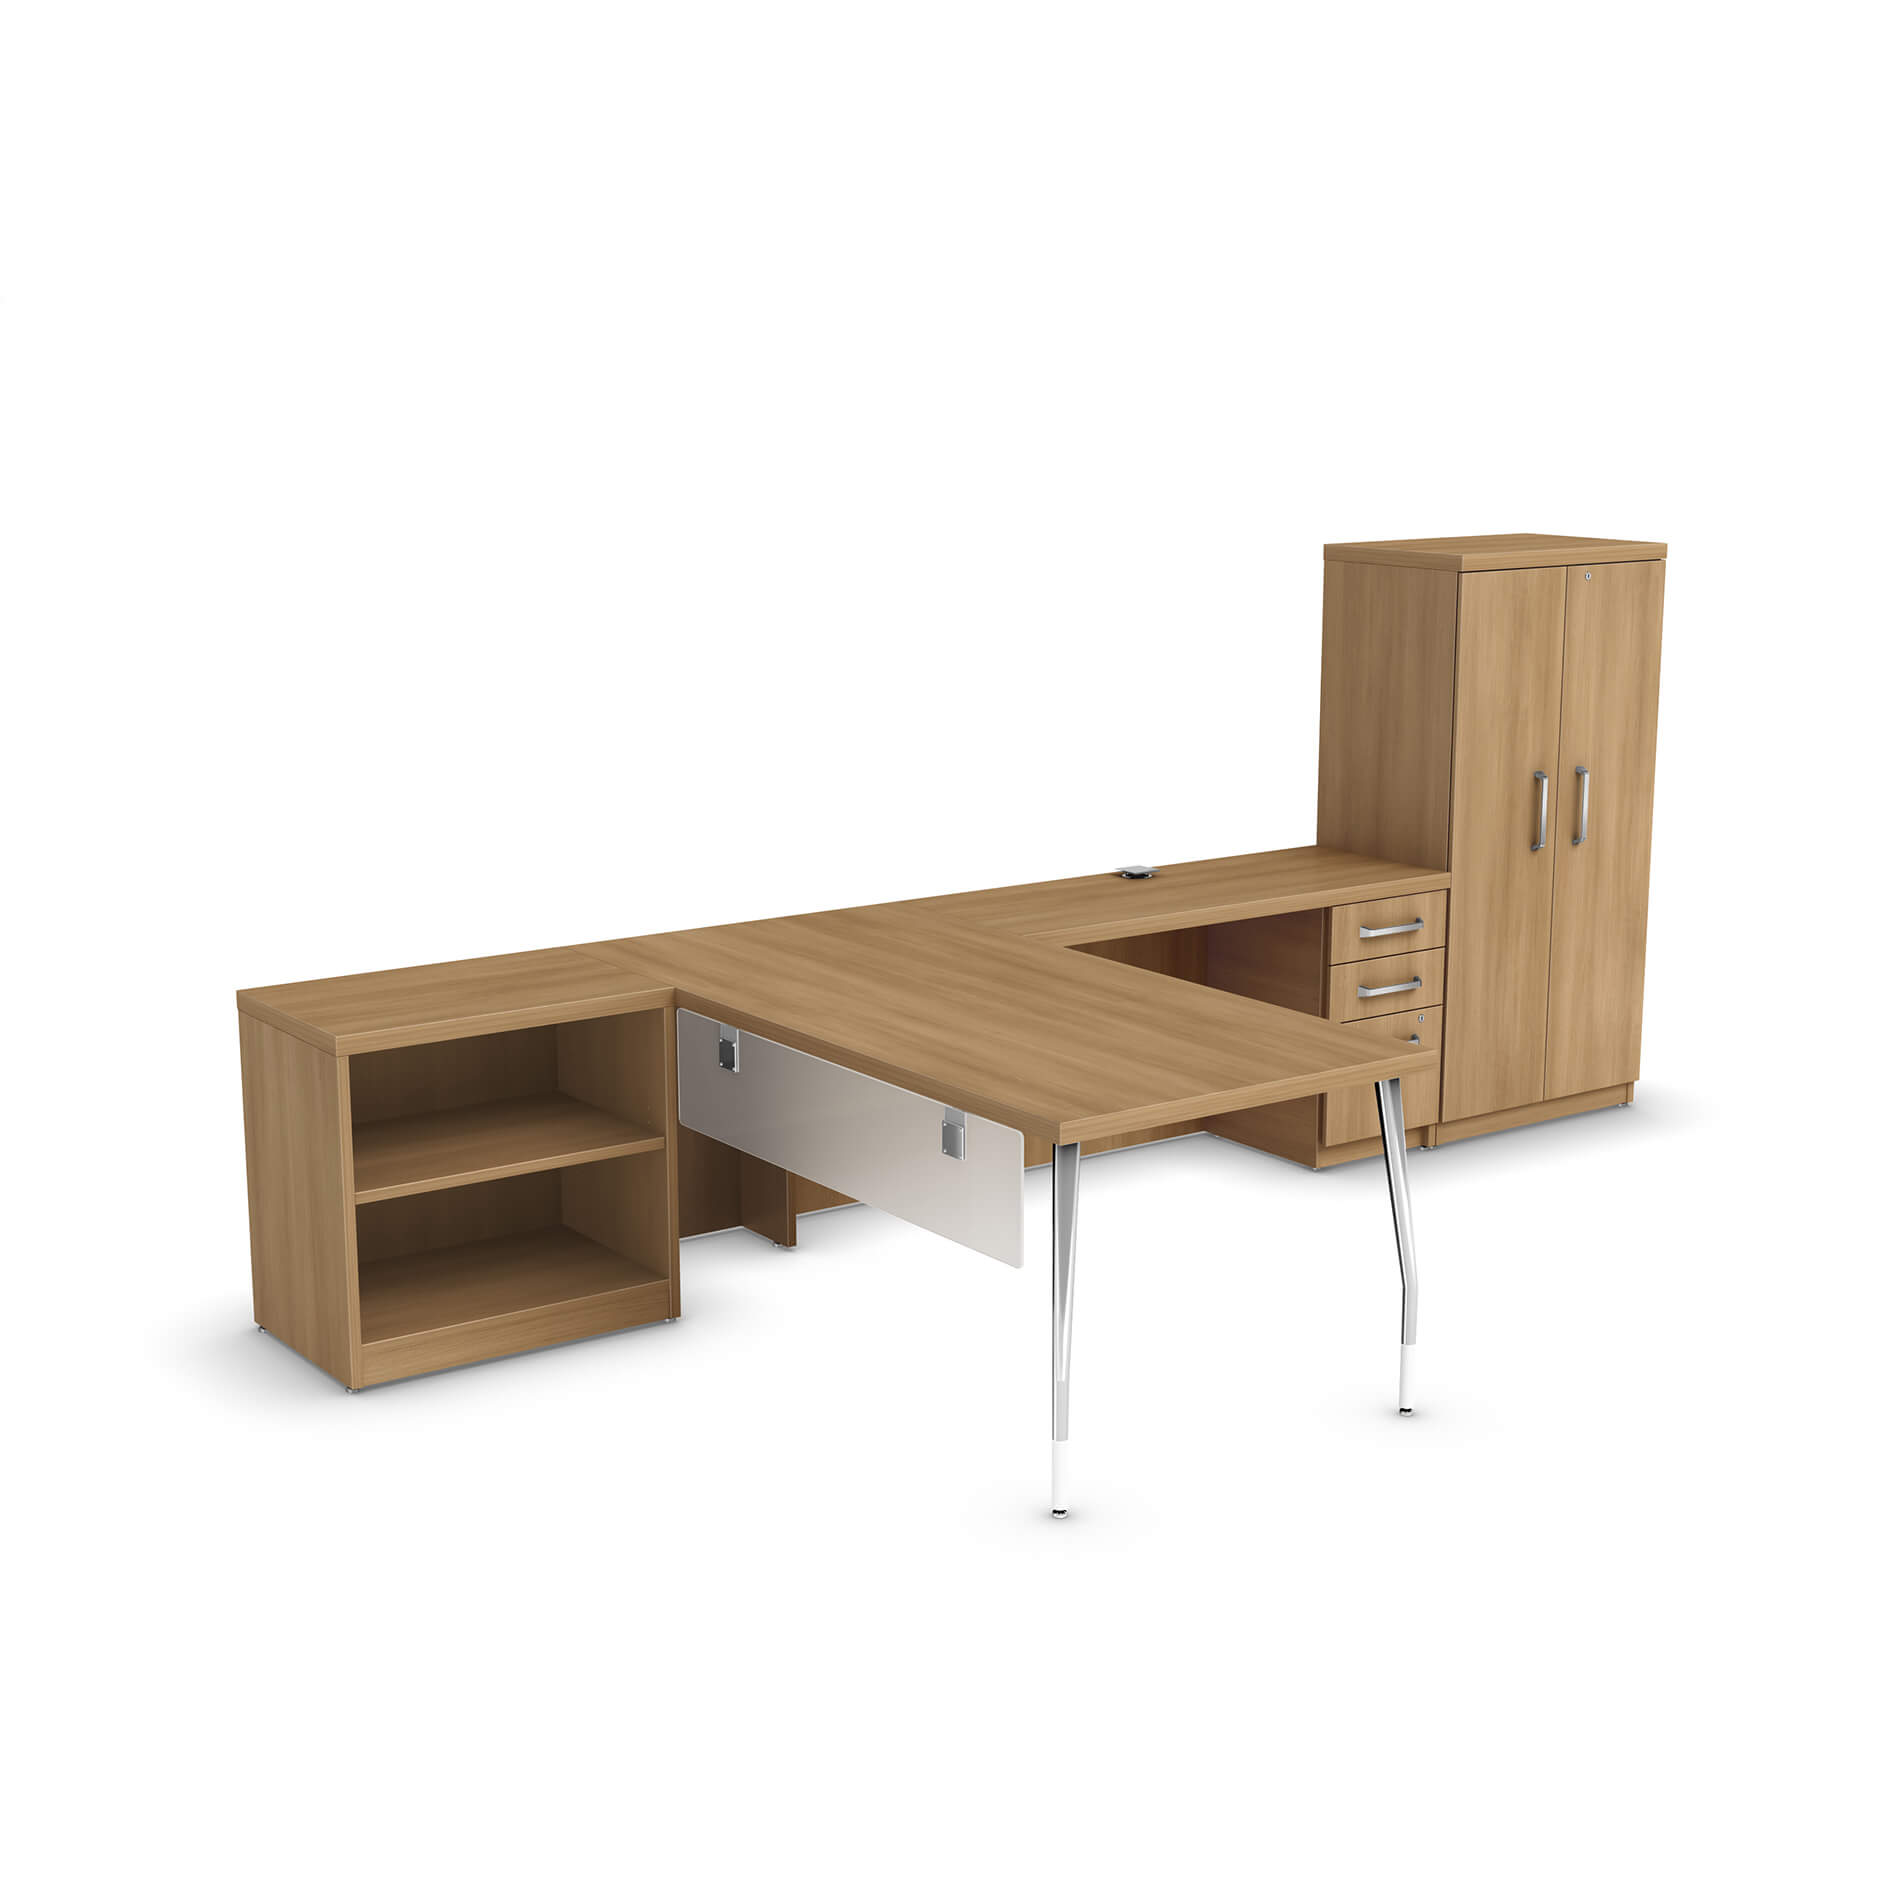 desk-furniture-unique-office-furniture.jpg